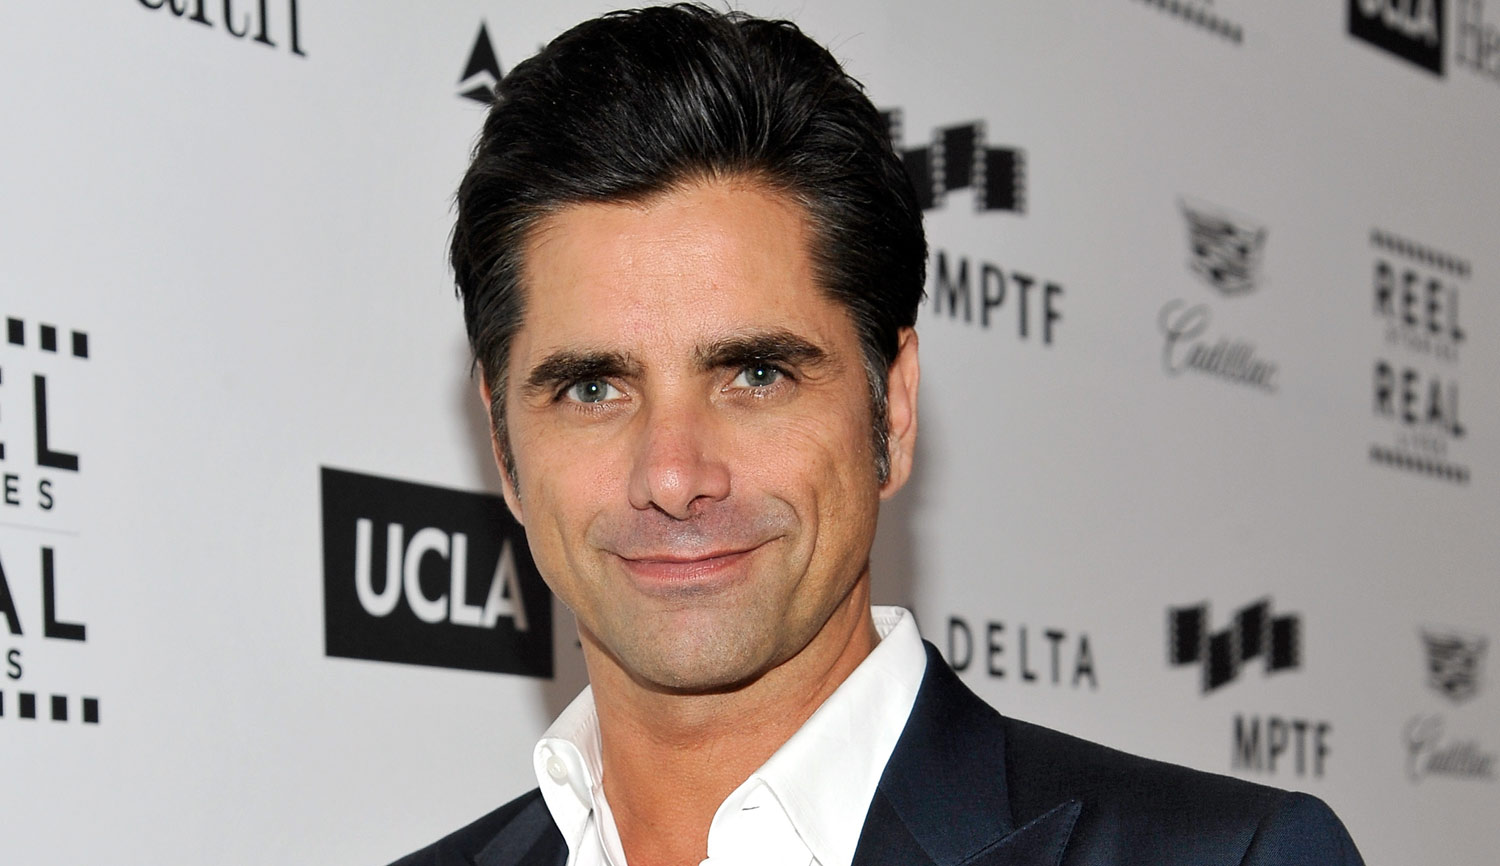 John Stamos Checks into Rehab for Substance Abuse | John Stamos : Just ...